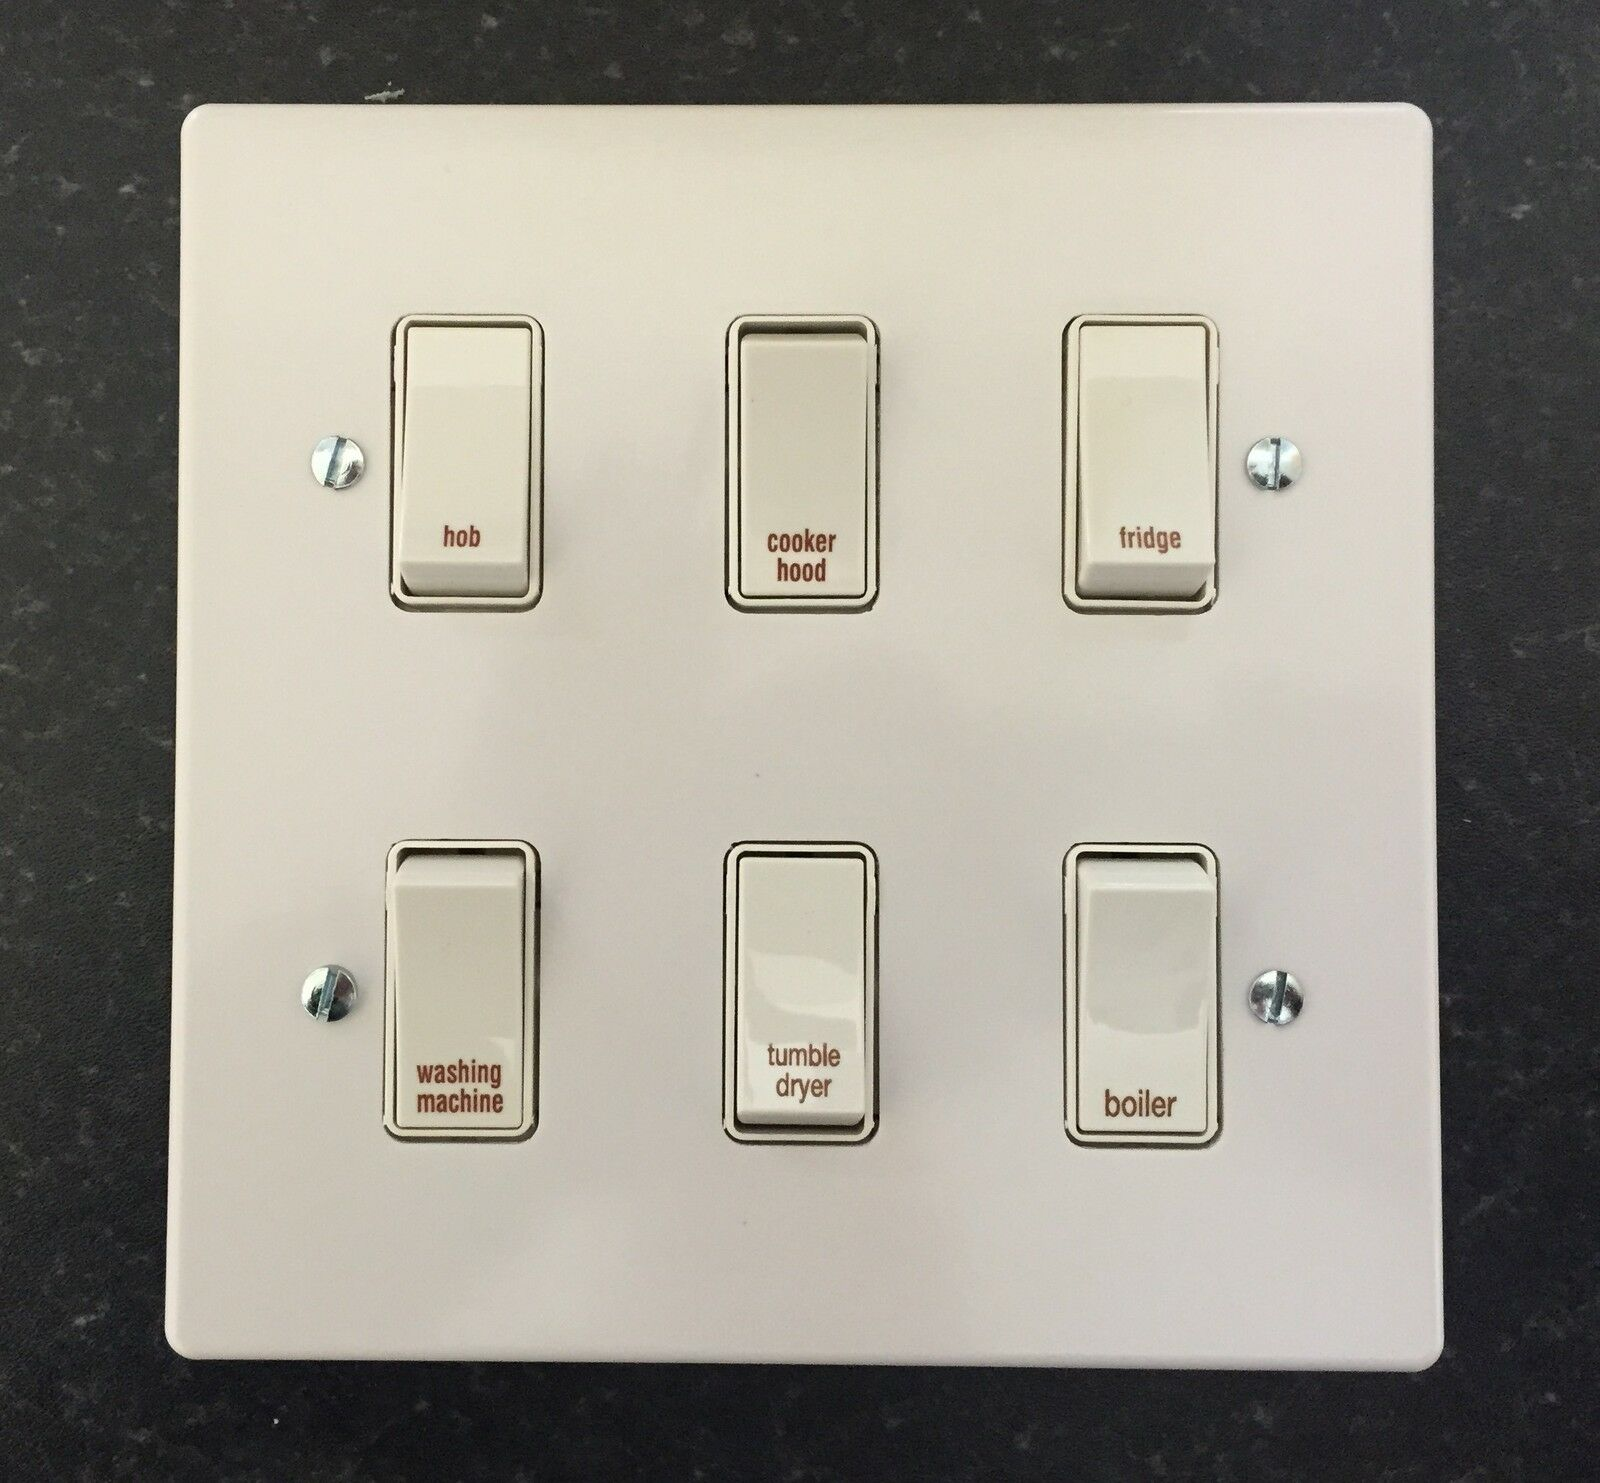 wiring diagram 2 switches 1 light lace sensor dually crabtree grid switch kitchen multi gang plates | ebay